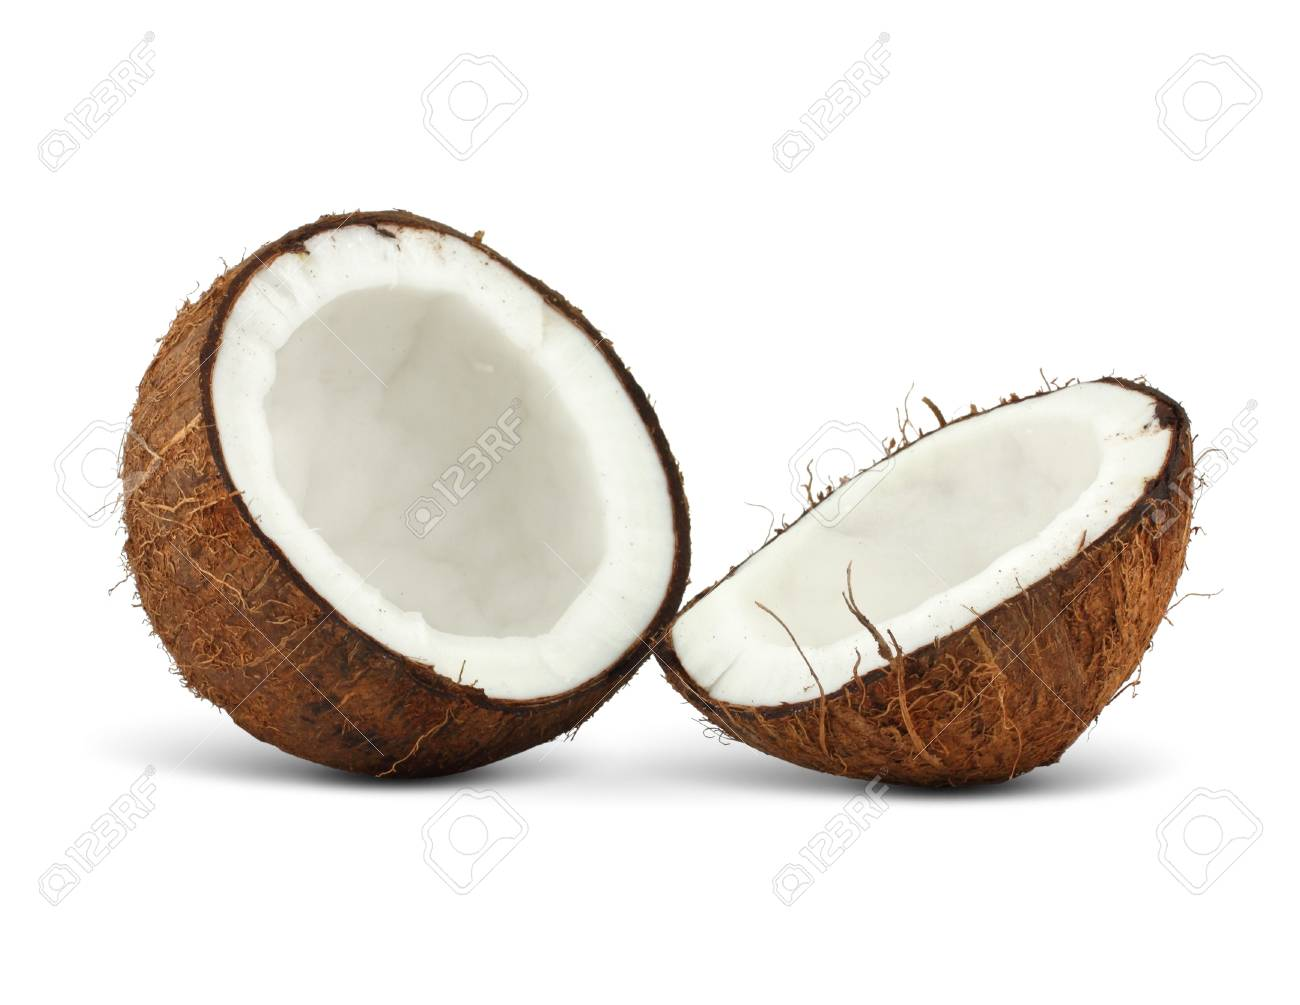 two halfs of coconut isolated on white background Stock Photo - 17156720